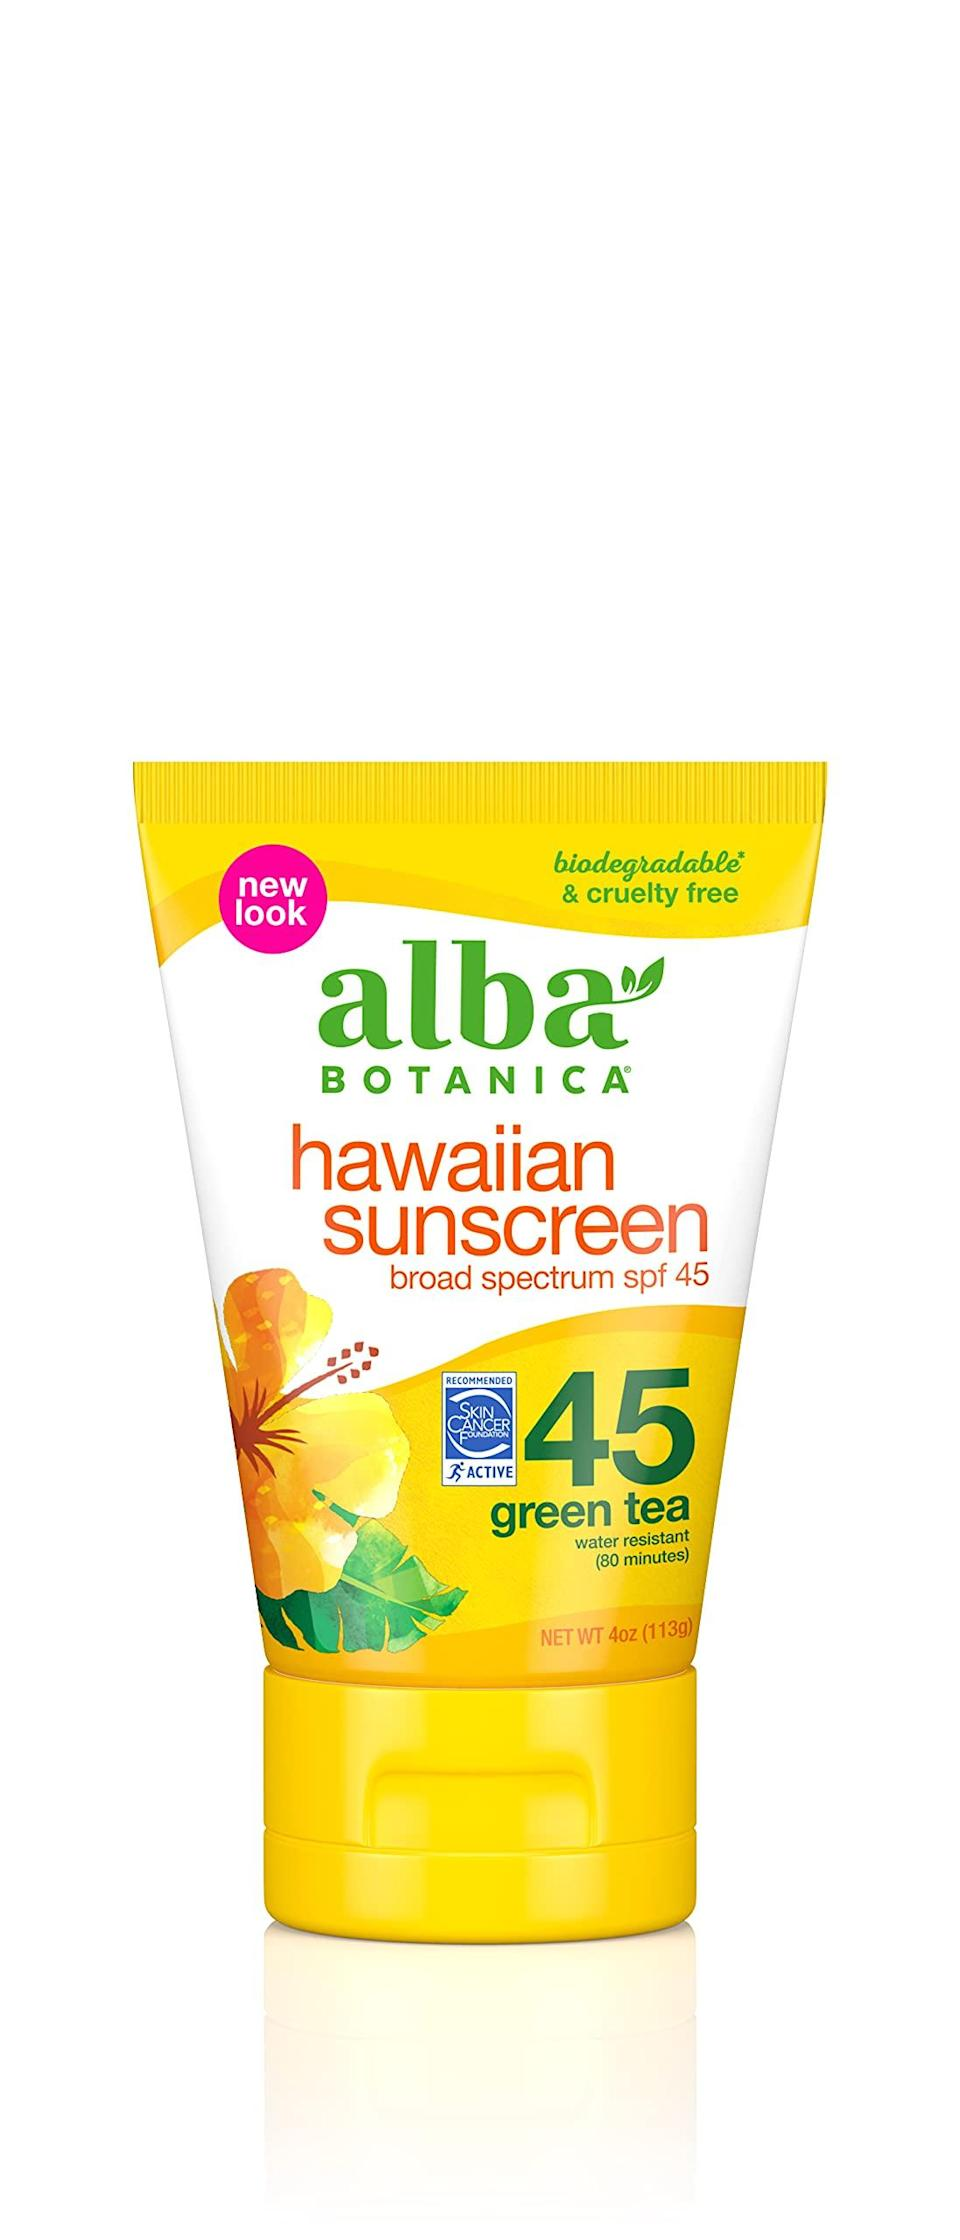 """<h2>Alba Botanica<br></h2><br>20% off select products<br><br><strong>Alba Botanica</strong> Sunscreen Lotion SPF 45, Green Tea, $, available at <a href=""""https://amzn.to/3qhiaPB"""" rel=""""nofollow noopener"""" target=""""_blank"""" data-ylk=""""slk:Amazon"""" class=""""link rapid-noclick-resp"""">Amazon</a>"""